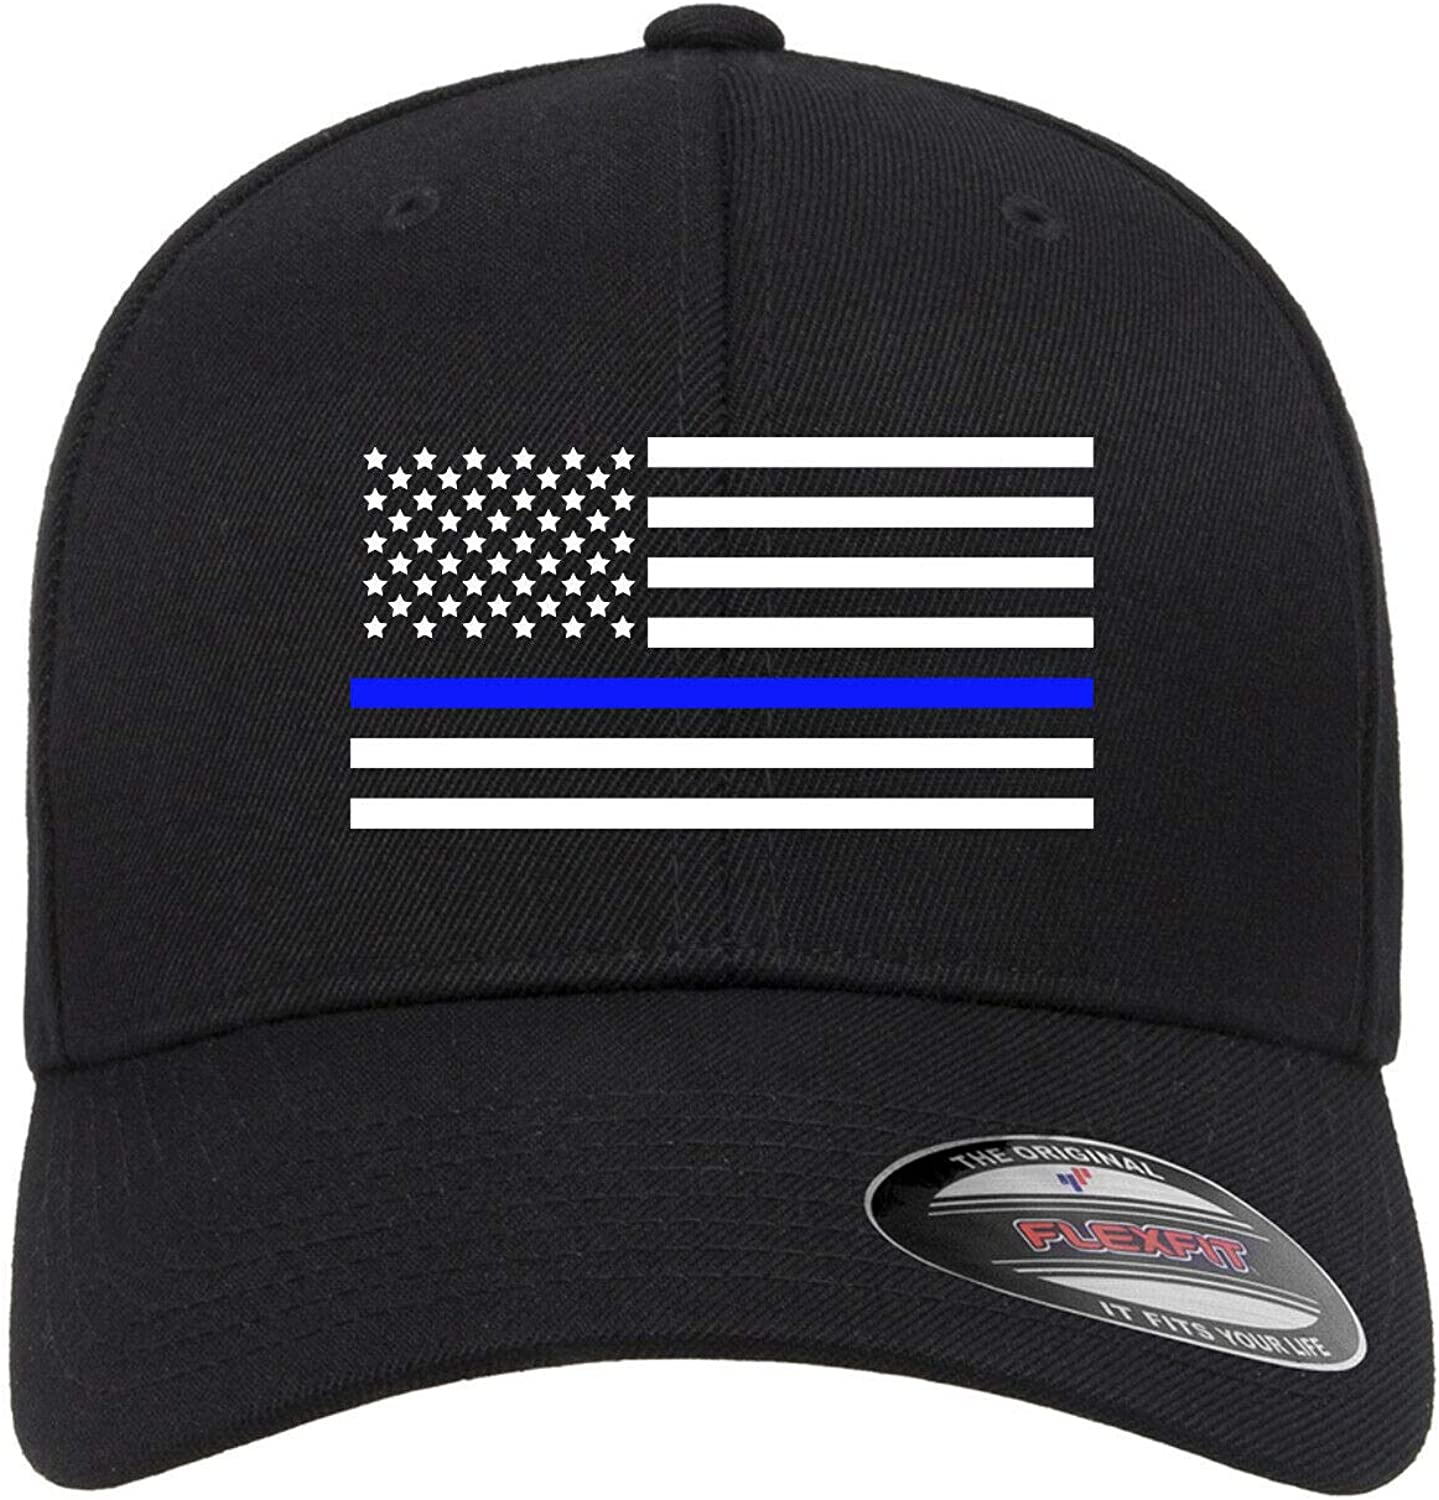 American Flag Thin Be super welcome Blue Line Embroidered Ba Sales results No. 1 Black Fitted Flexfit